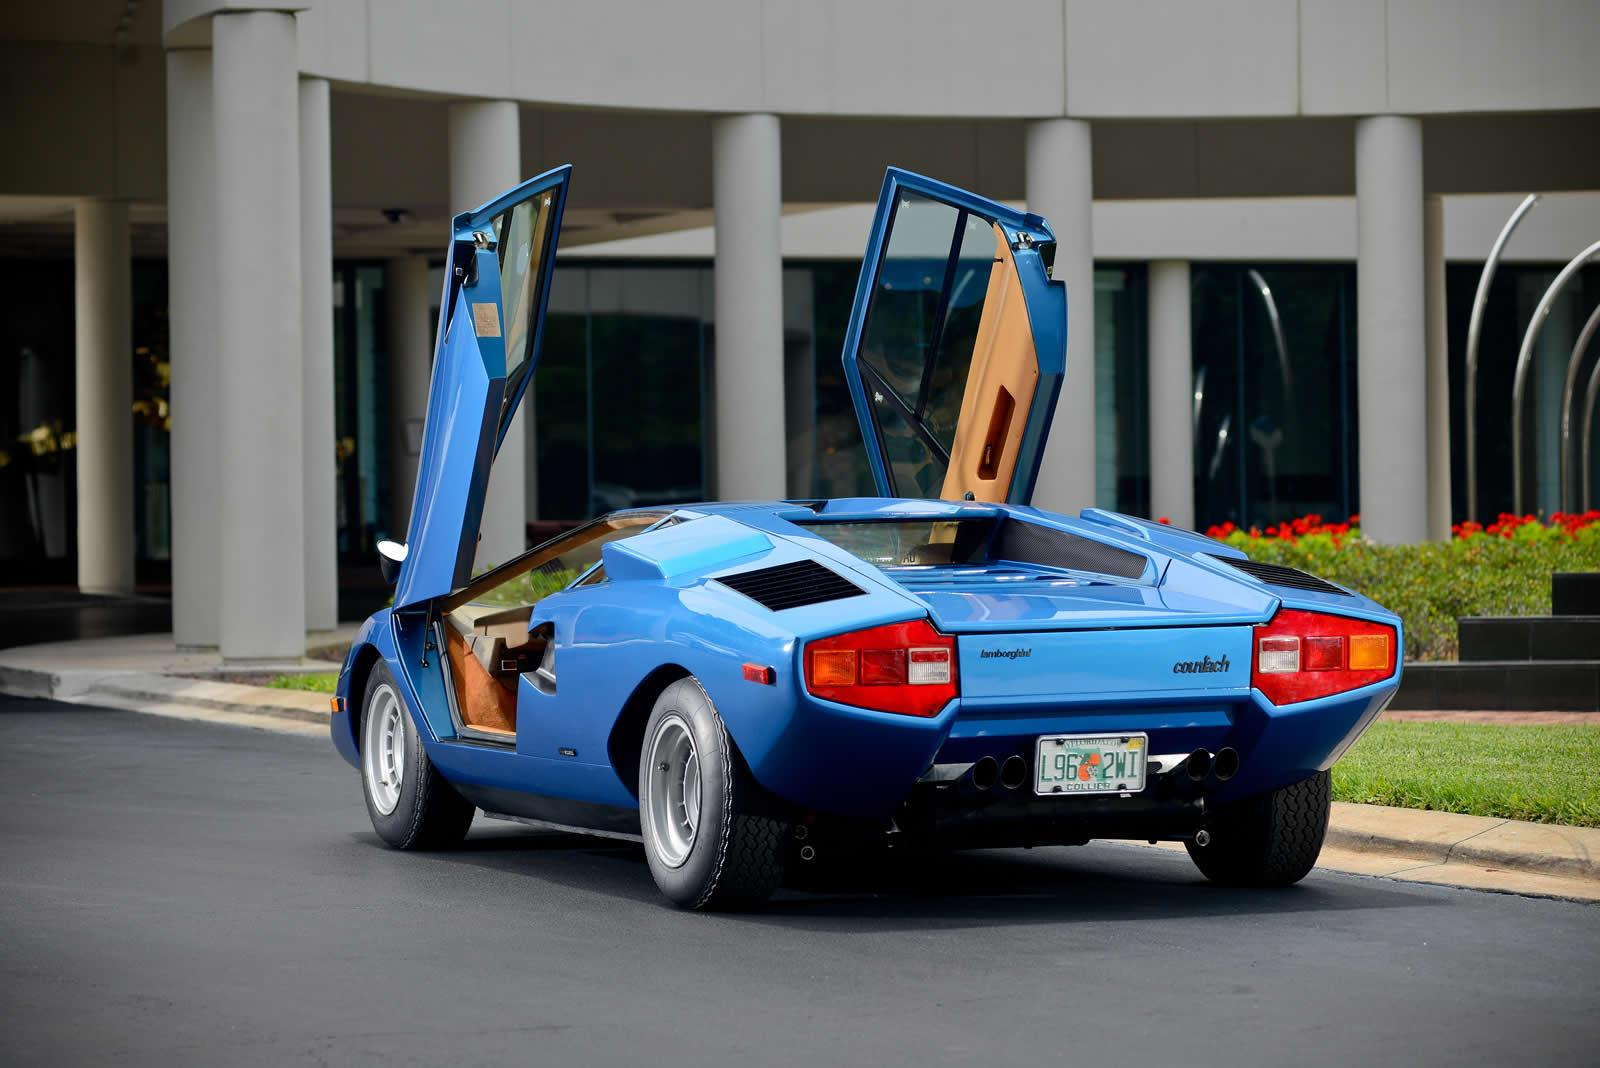 https://pictures.topspeed.com/IMG/jpg/201406/1973-lamborghini-countach-7.jpg